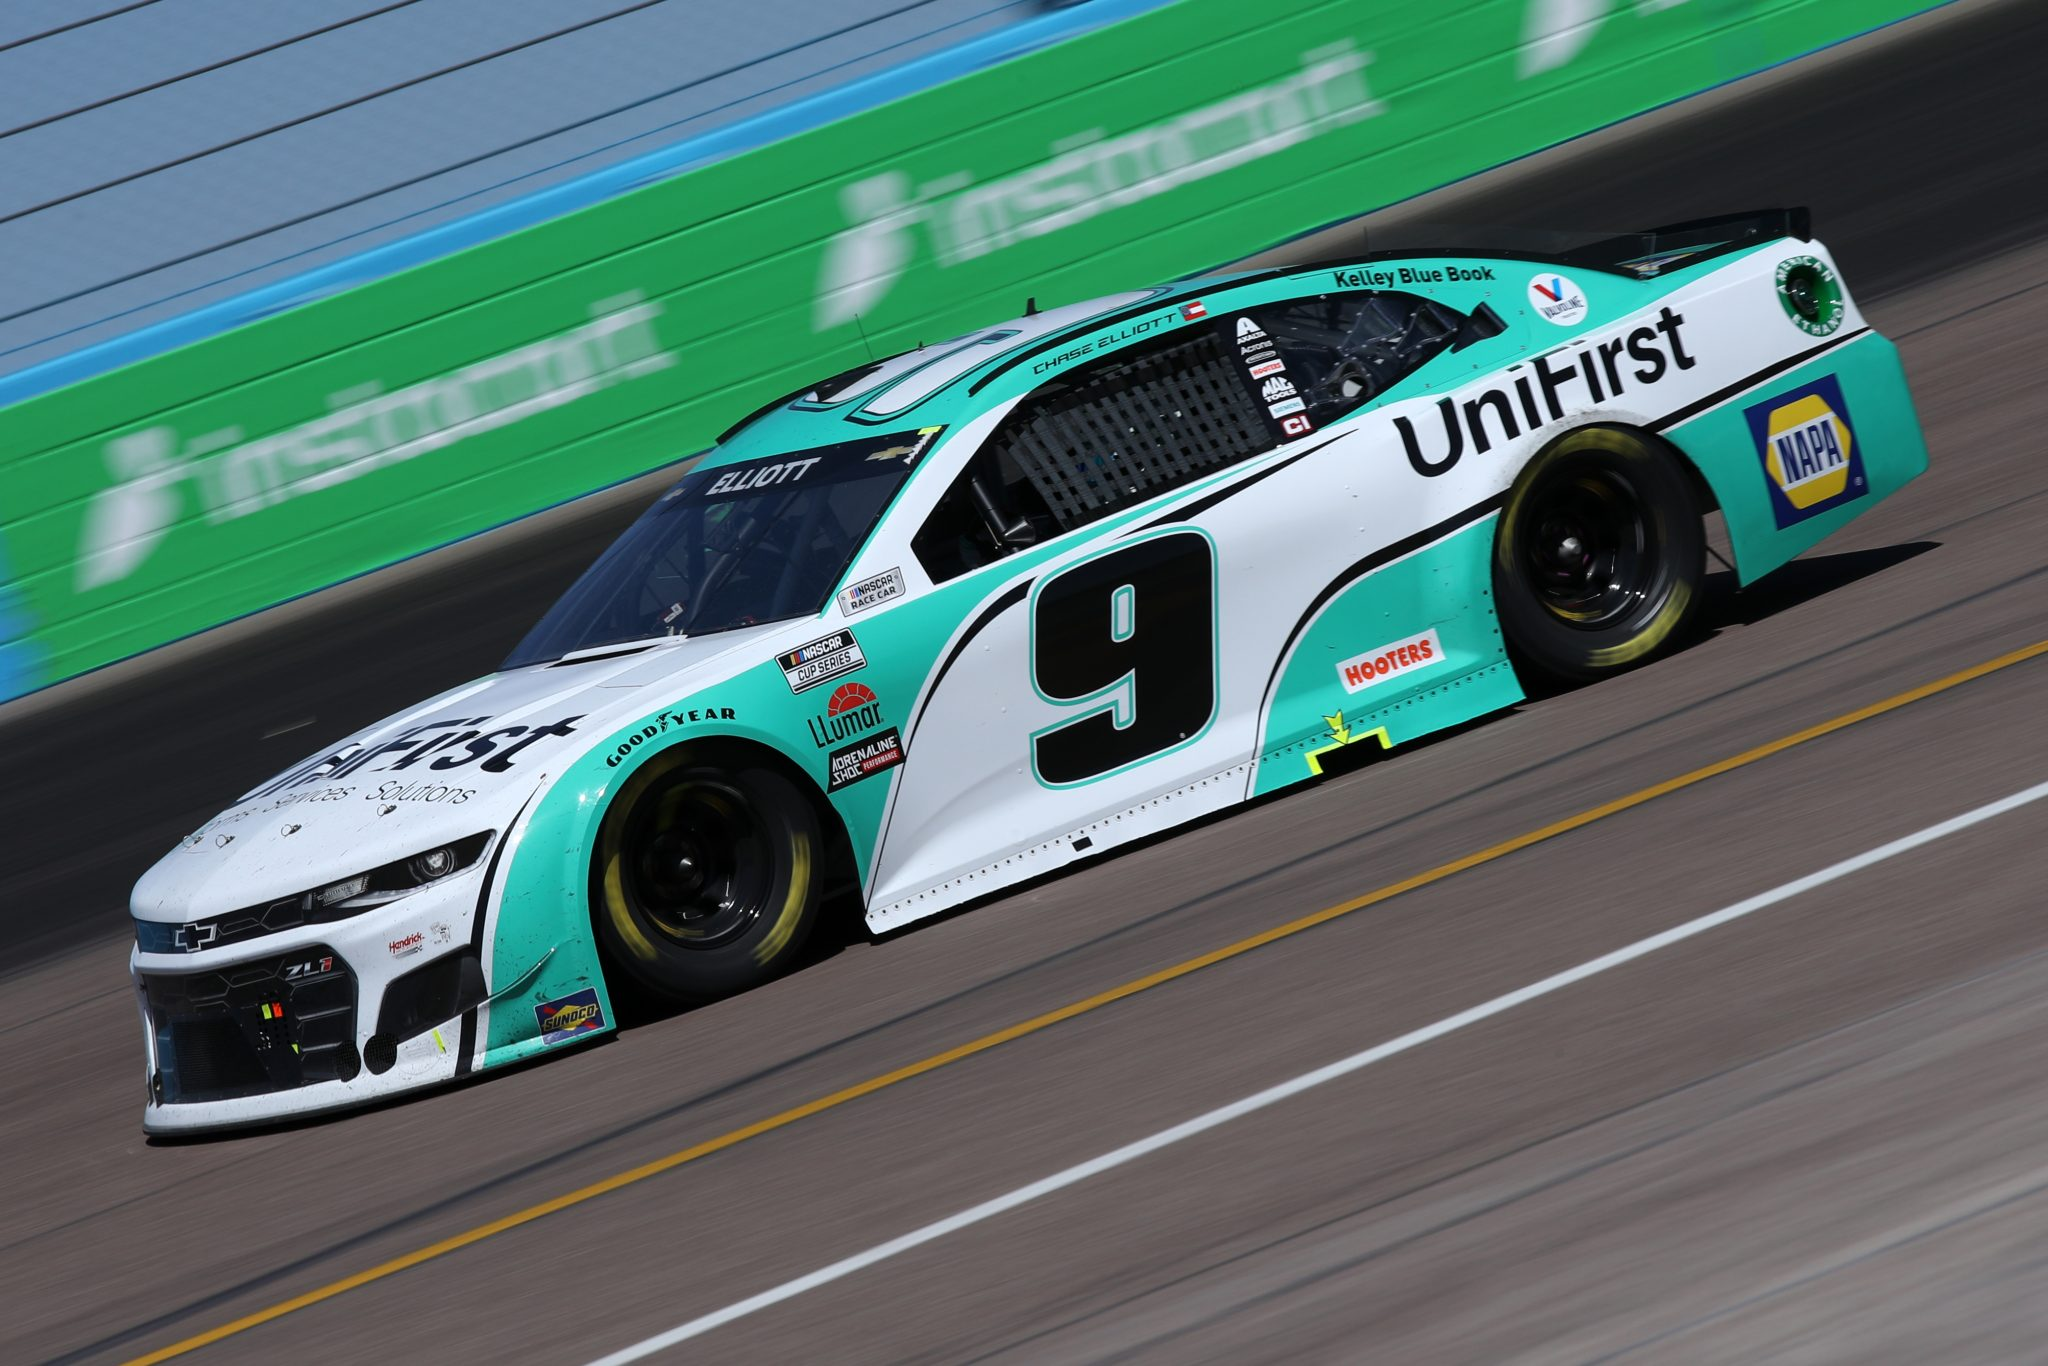 AVONDALE, ARIZONA - MARCH 14: Chase Elliott, driver of the #9 UniFirst Chevrolet, drives during the NASCAR Cup Series Instacart 500 at Phoenix Raceway on March 14, 2021 in Avondale, Arizona. (Photo by Sean Gardner/Getty Images) | Getty Images